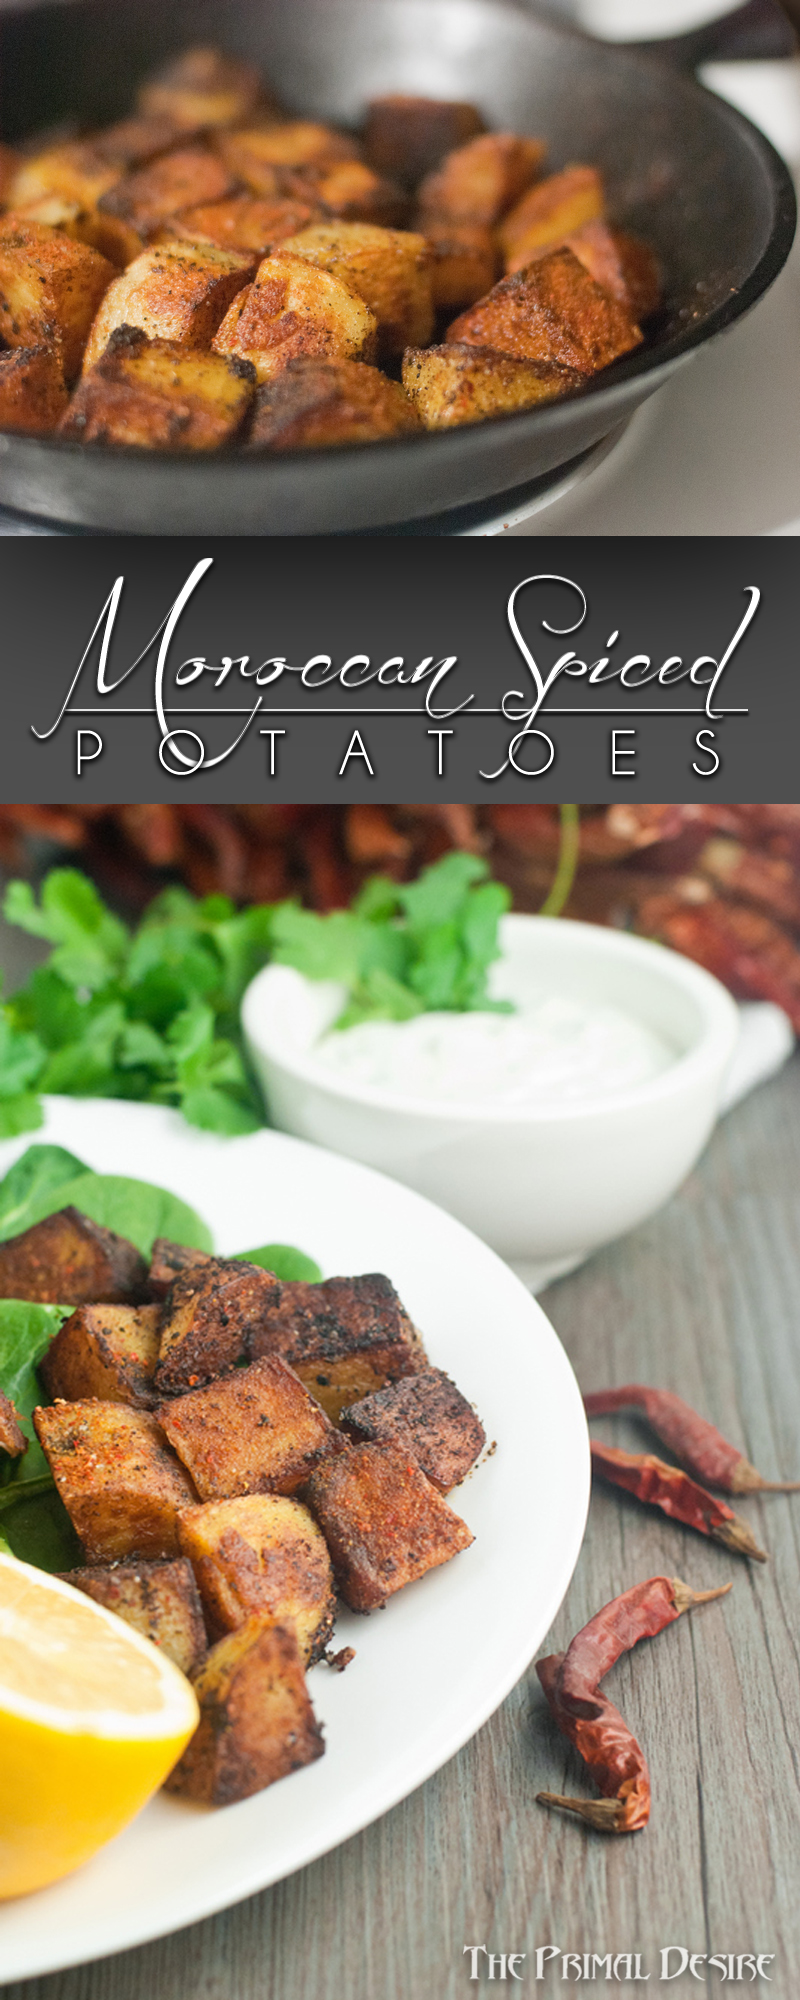 Moroccan Spiced Potatoes - pin